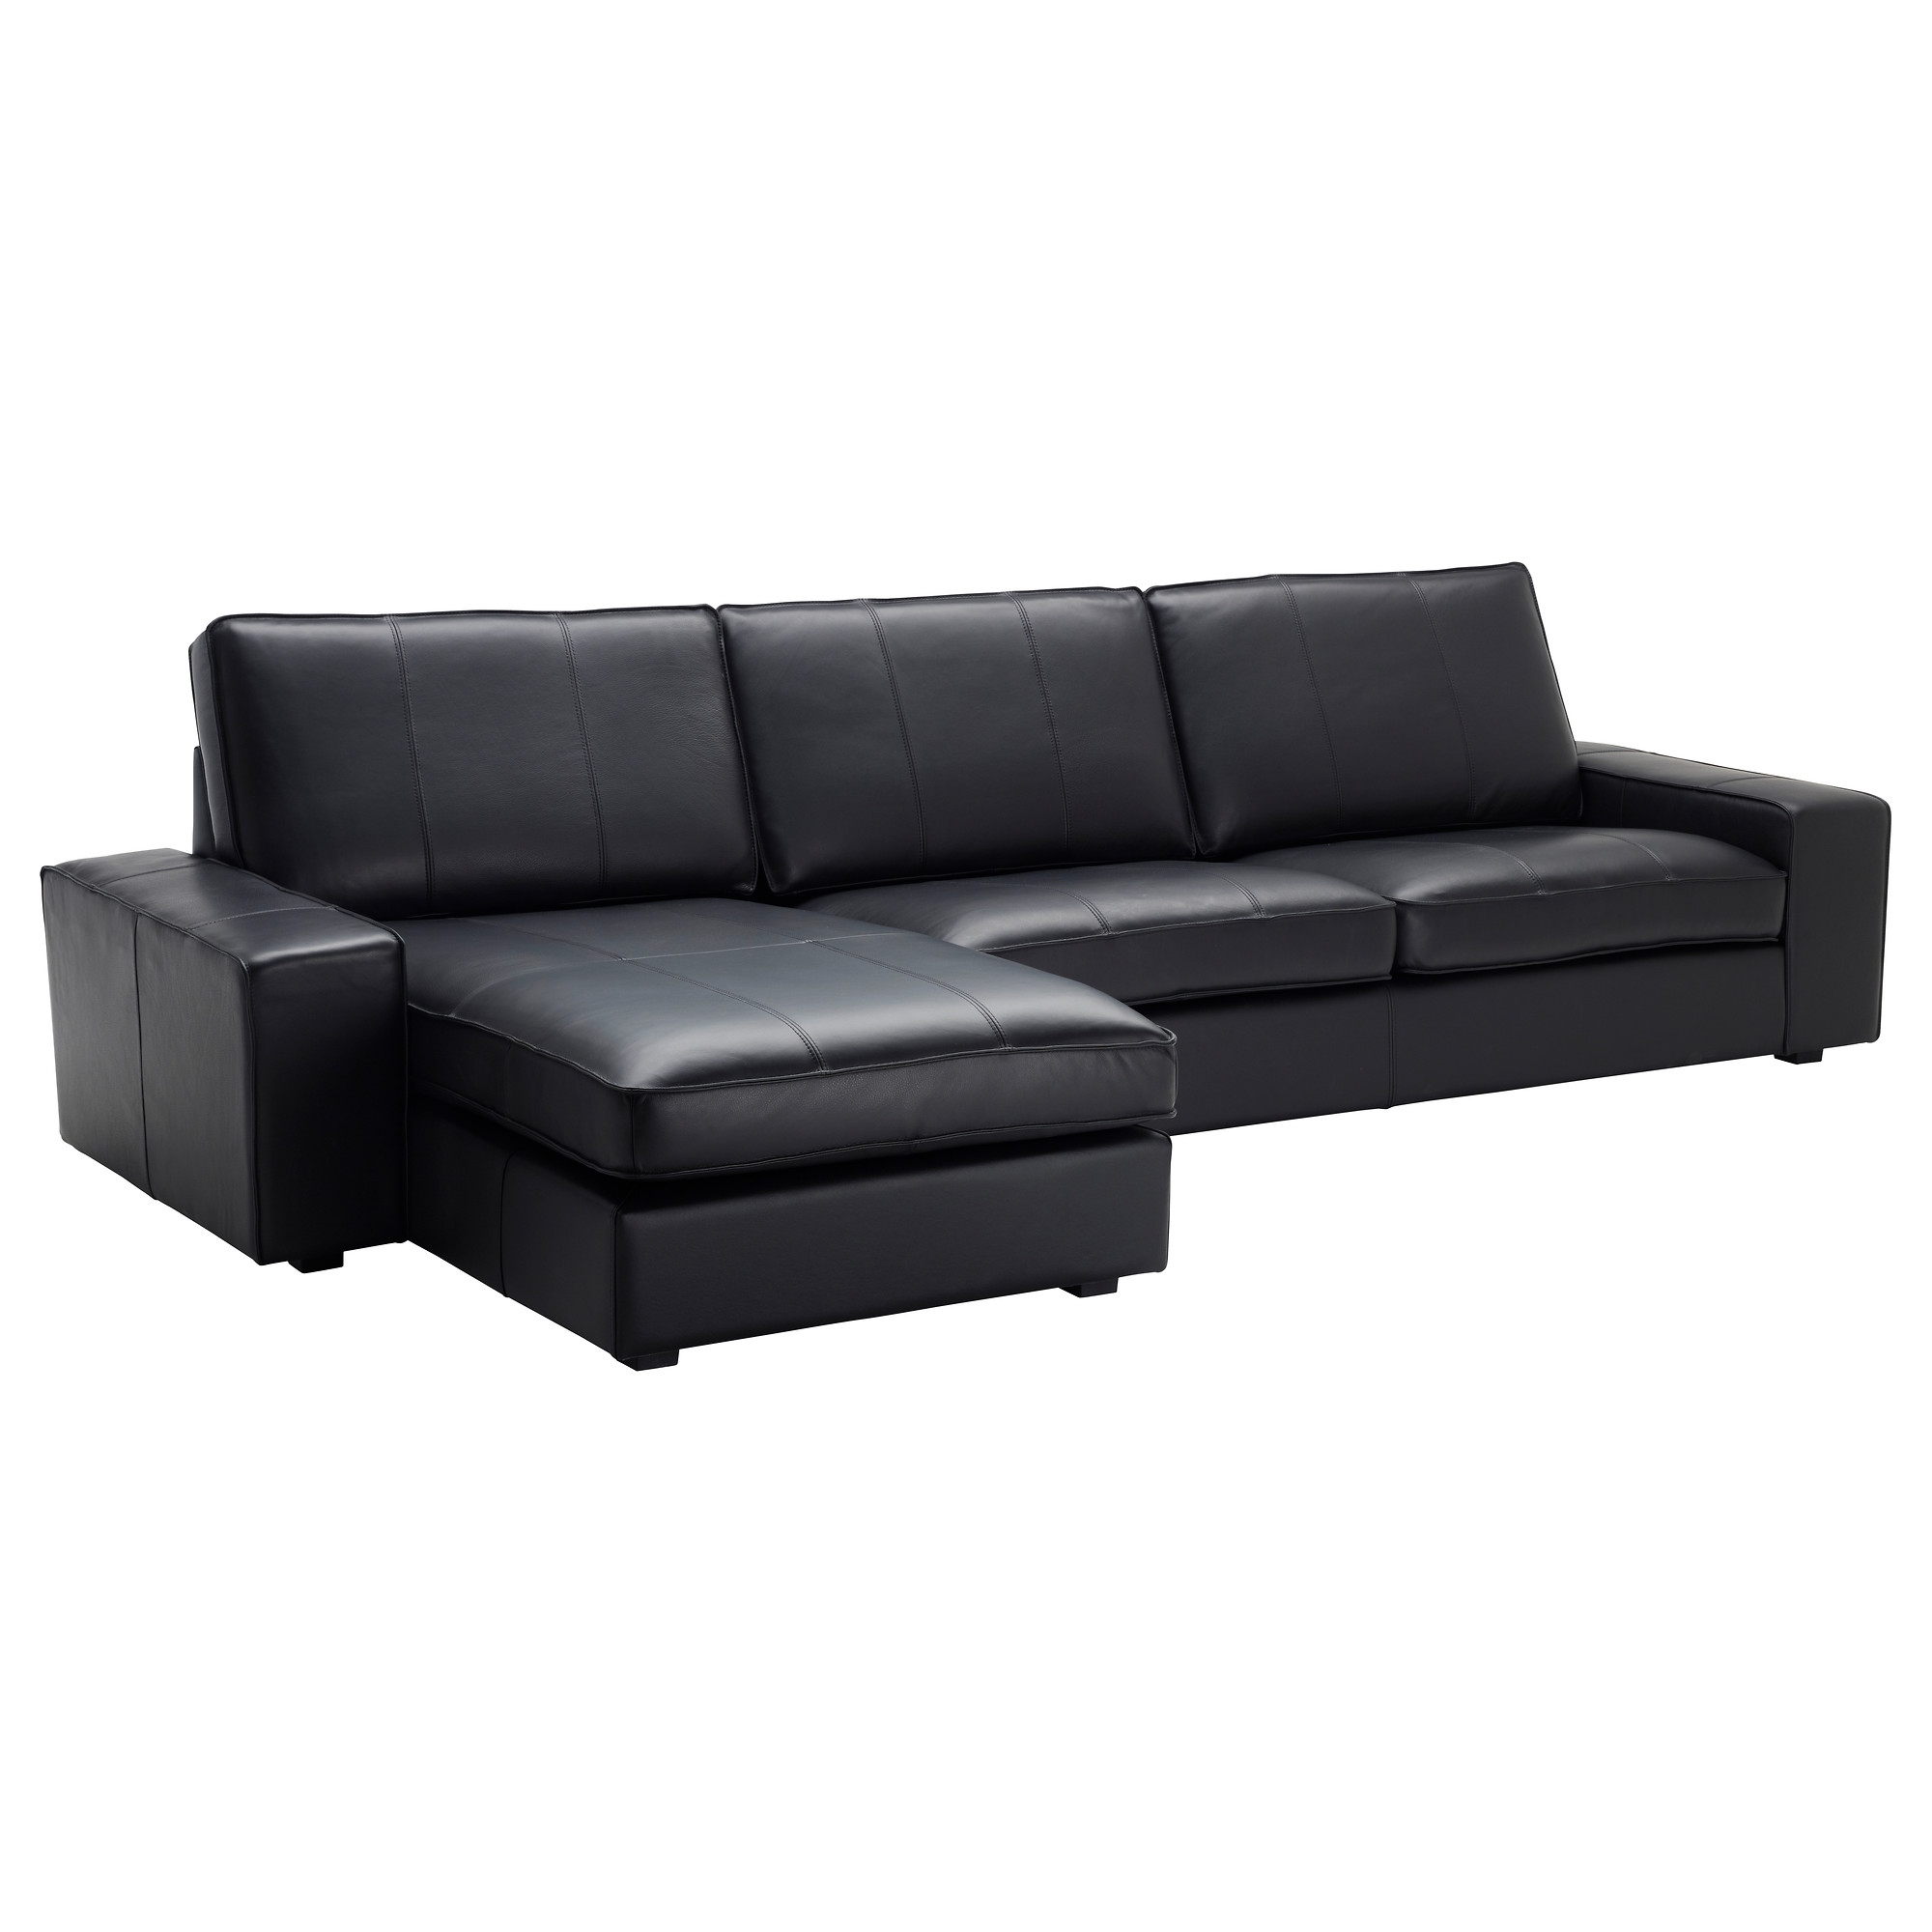 Ikea Chaise Lounges Intended For Most Popular Kivik Sectional, 4 Seat – With Chaise/grann/bomstad Black – Ikea (View 7 of 15)